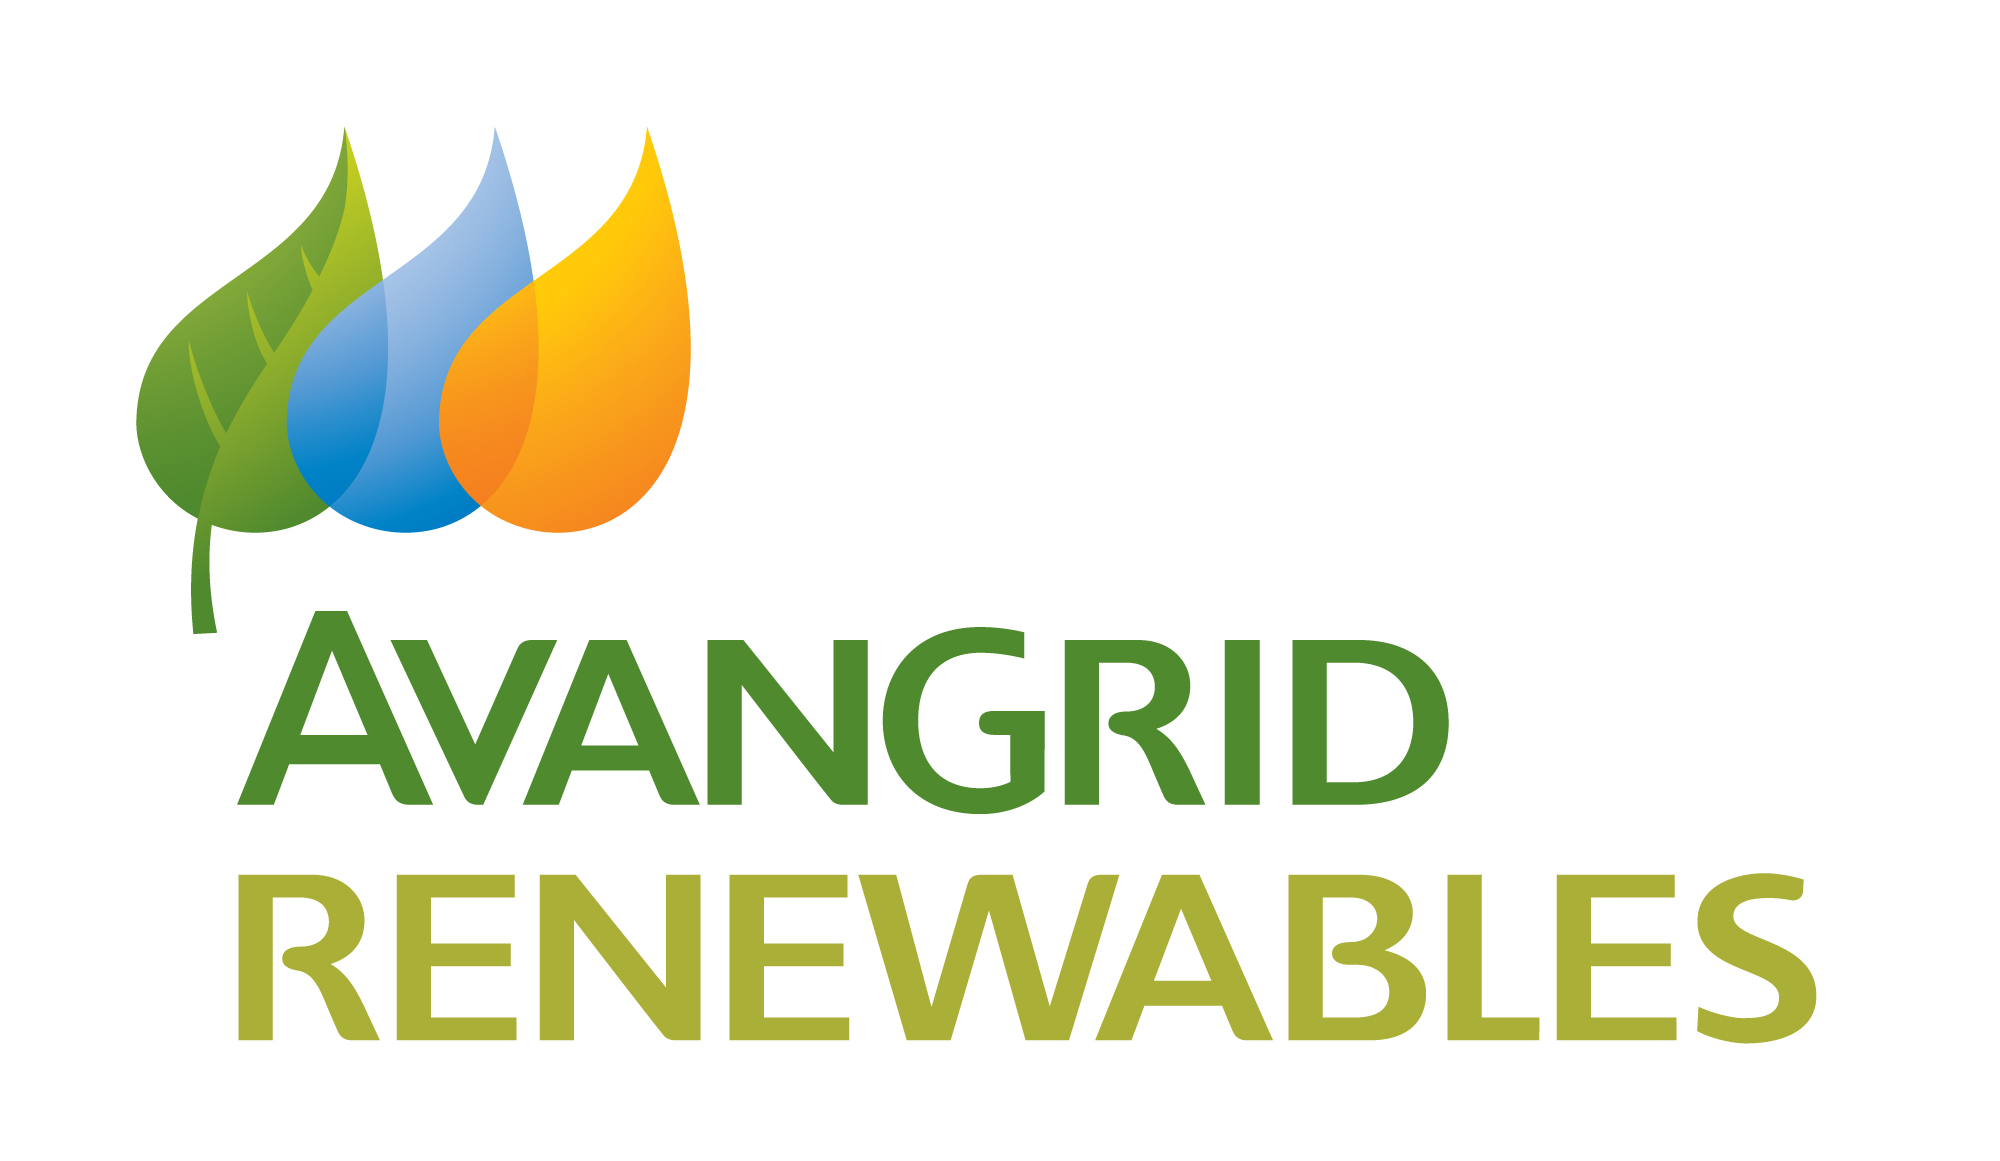 Avangrid RenewablesProfile Picture